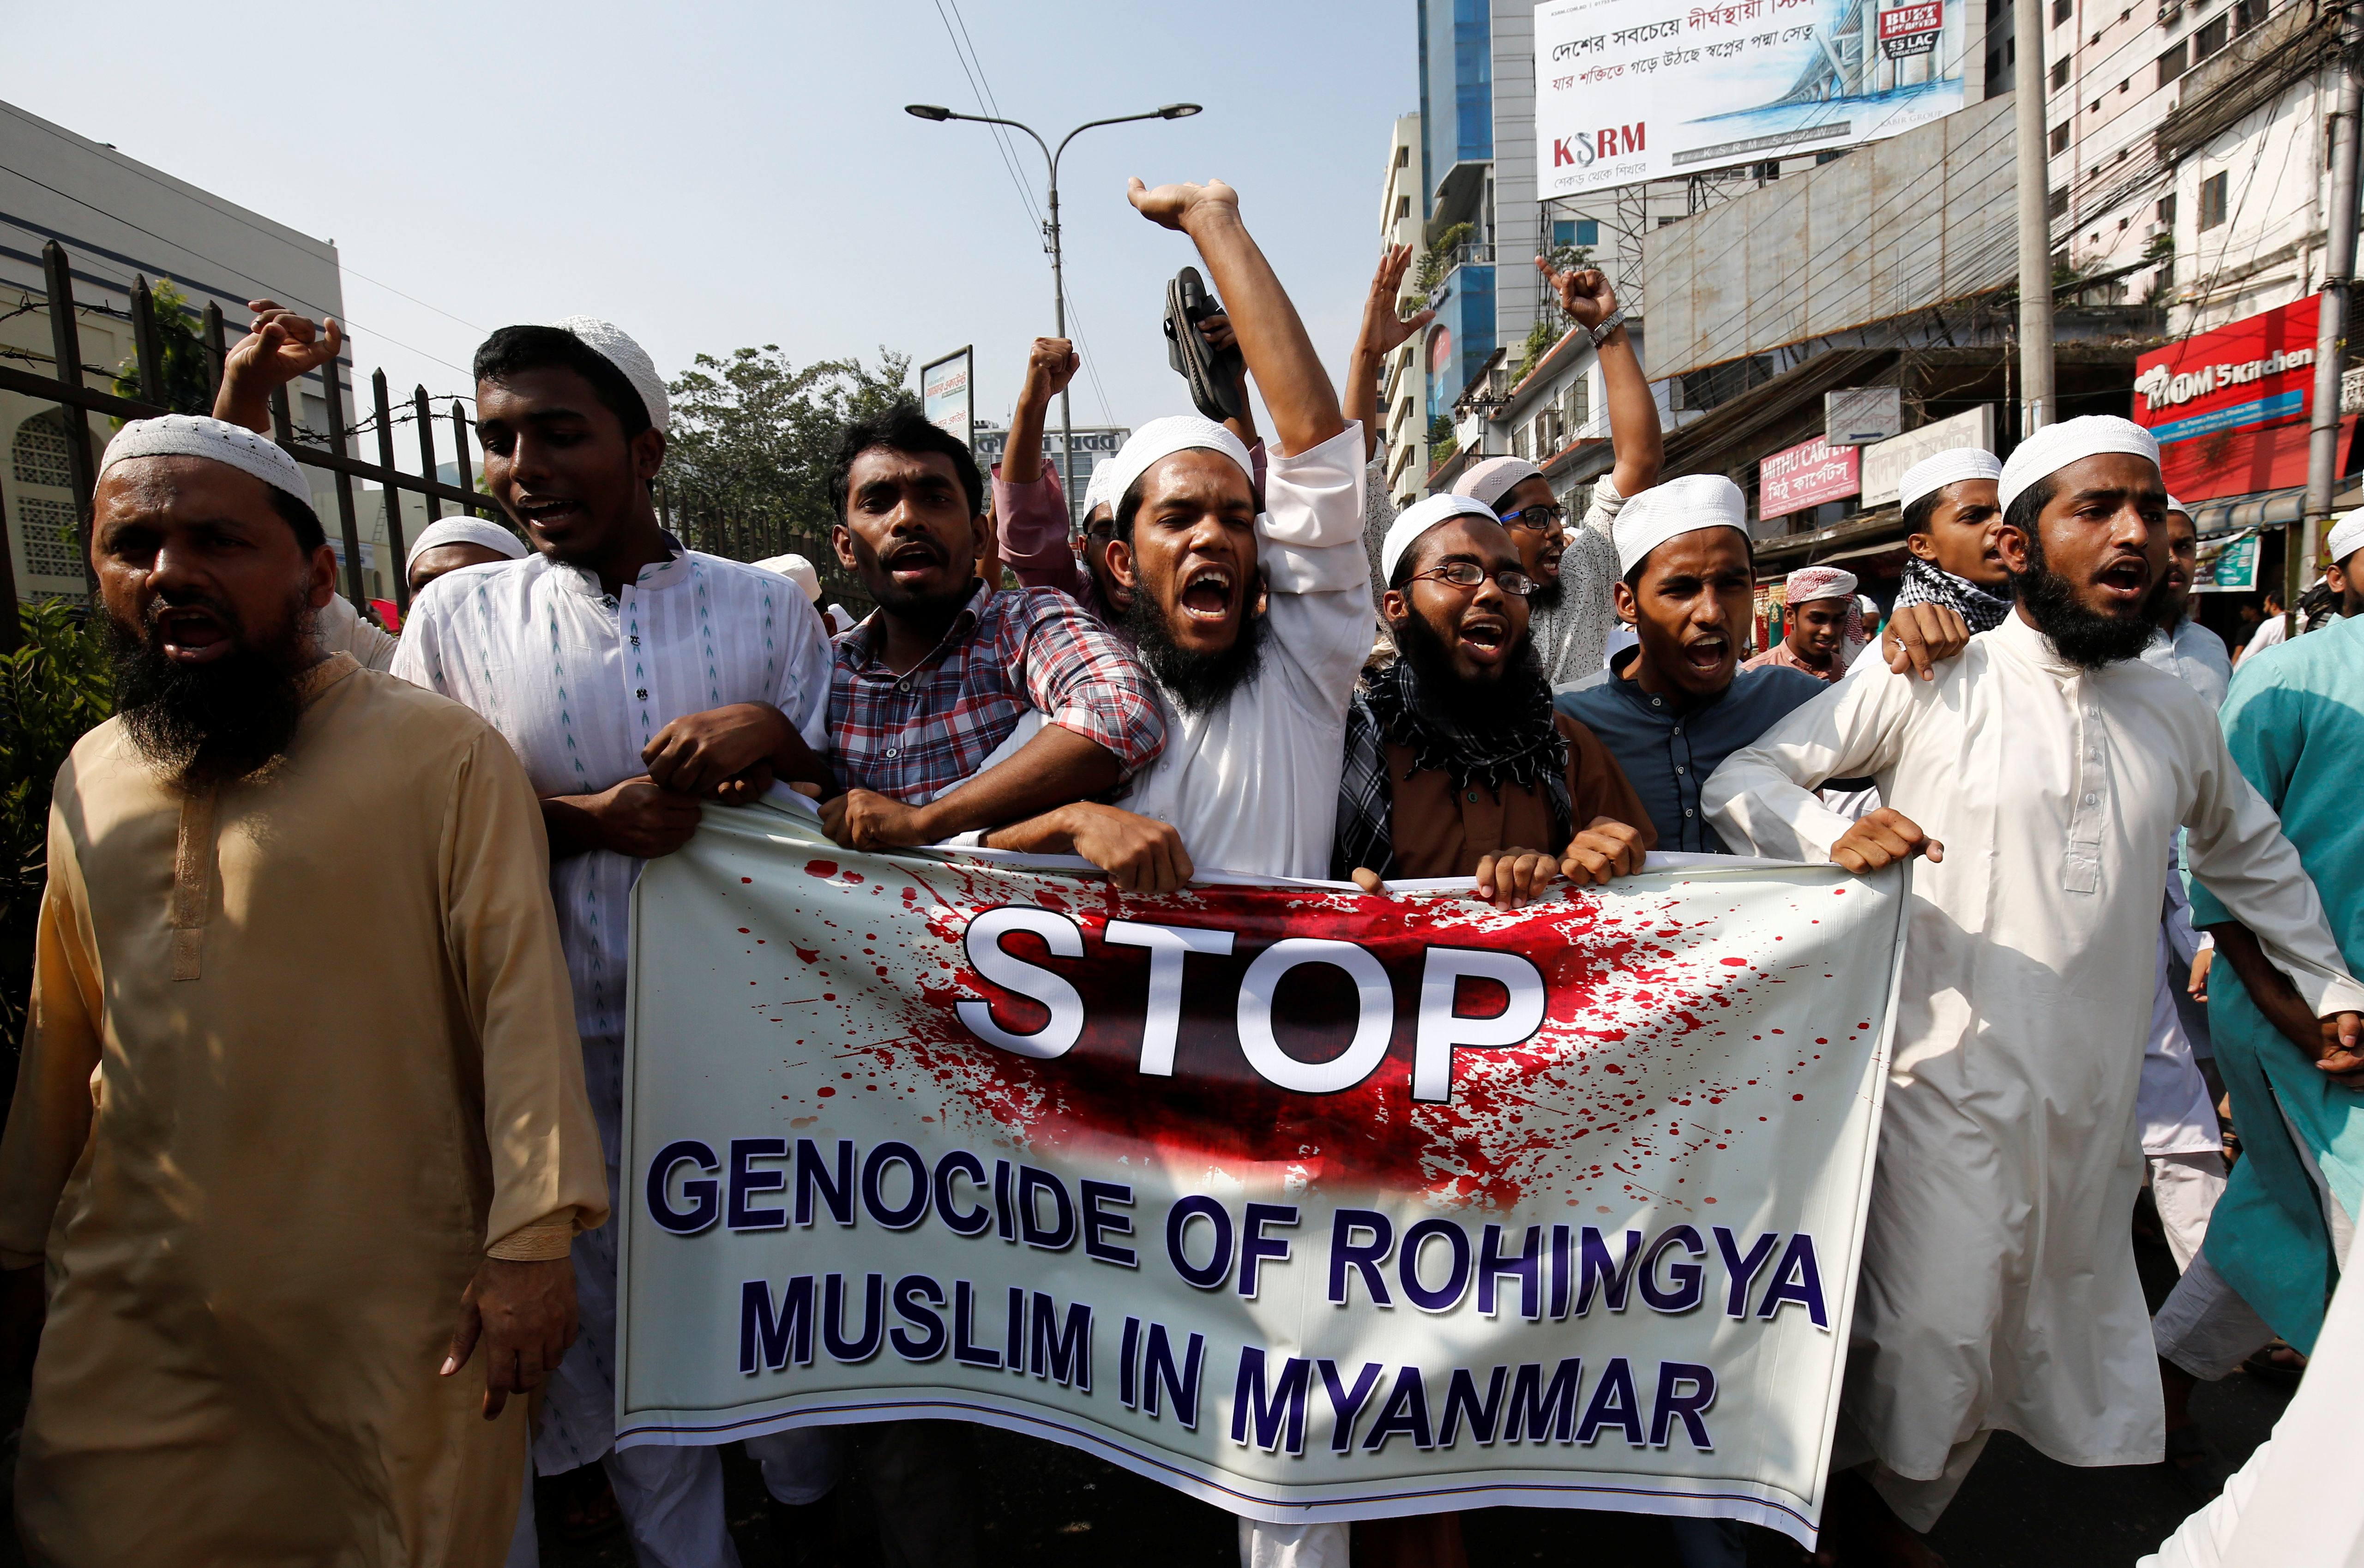 Bangladeshi activists of an Islamic group protest against the deaths of Rohingya Muslims in Arakan State, in Dhaka, Bangladesh, on 1 December 2016. (Photo: Reuters)